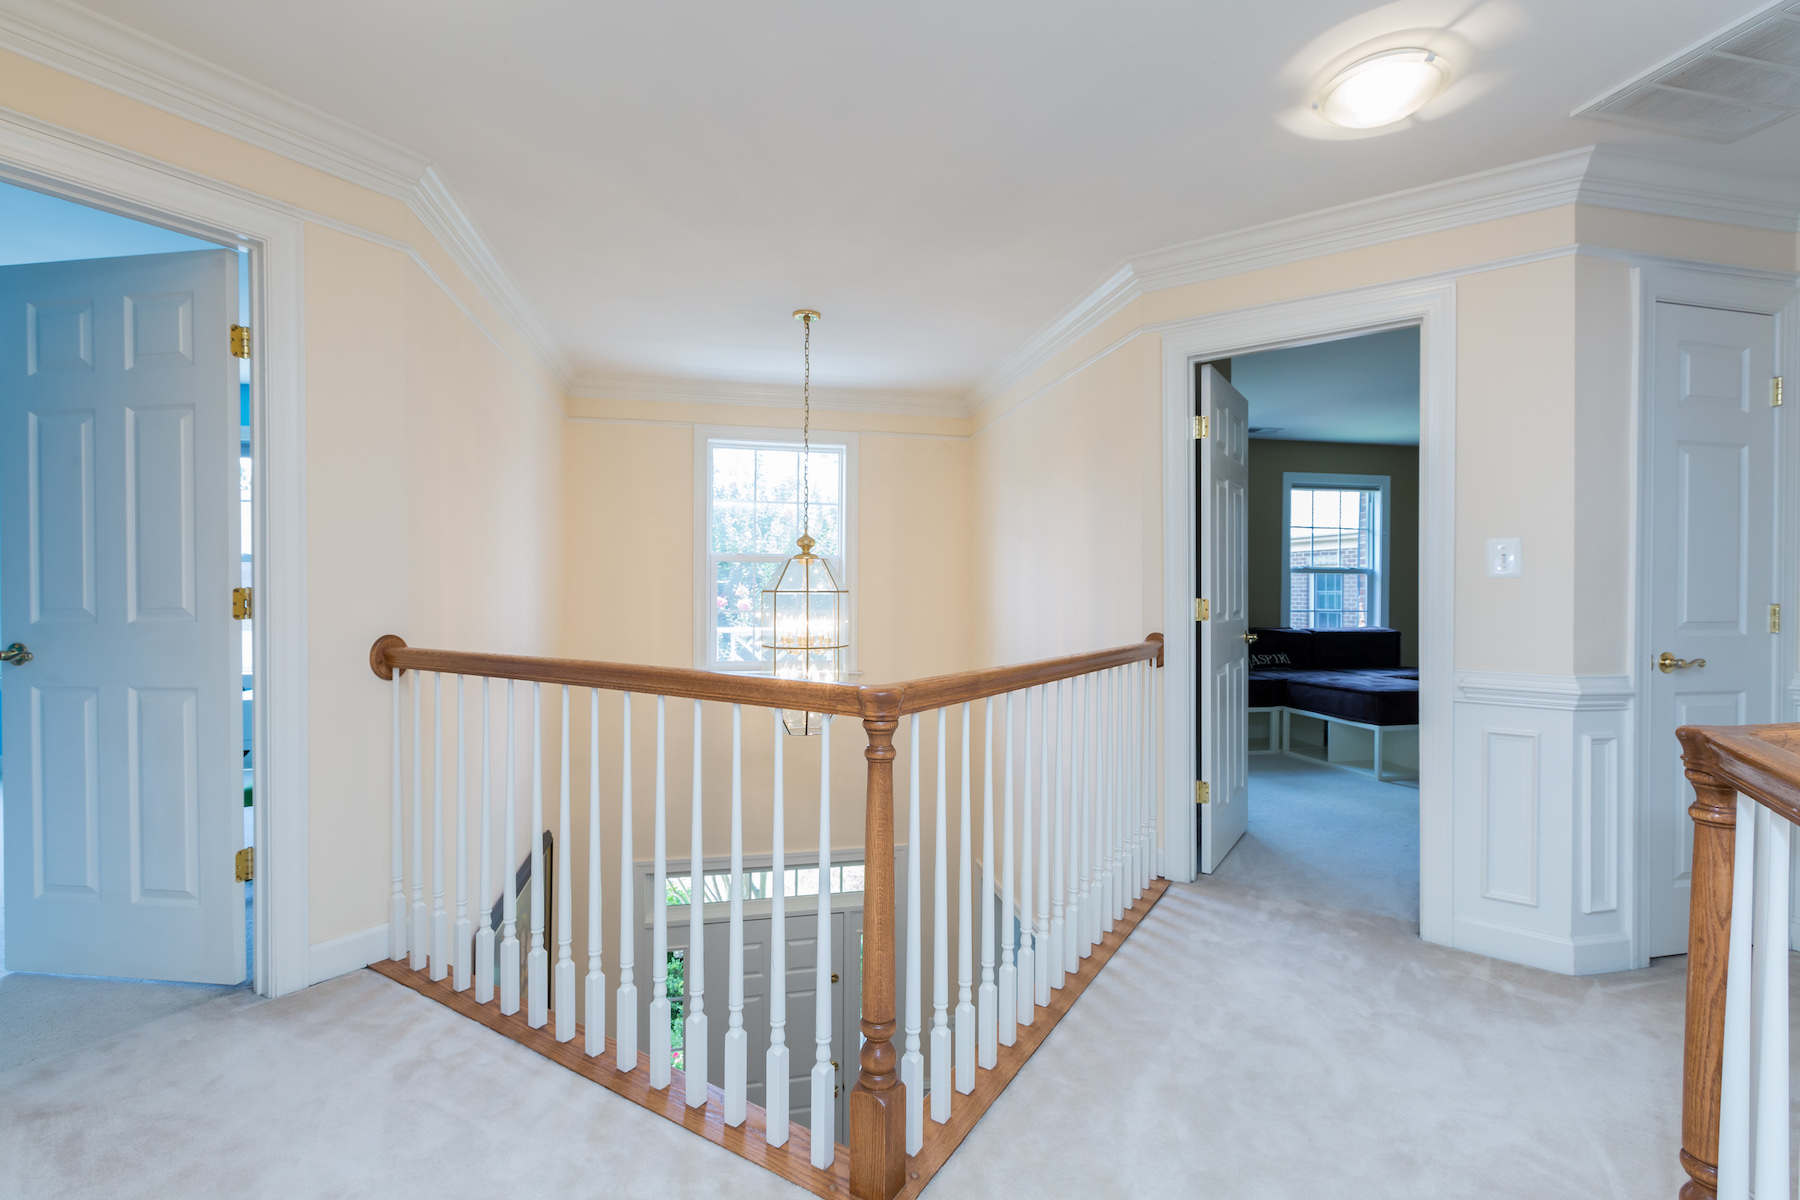 Additional photo for property listing at Falls Church 6654 Avignon Blvd Falls Church, Virginia 22043 United States